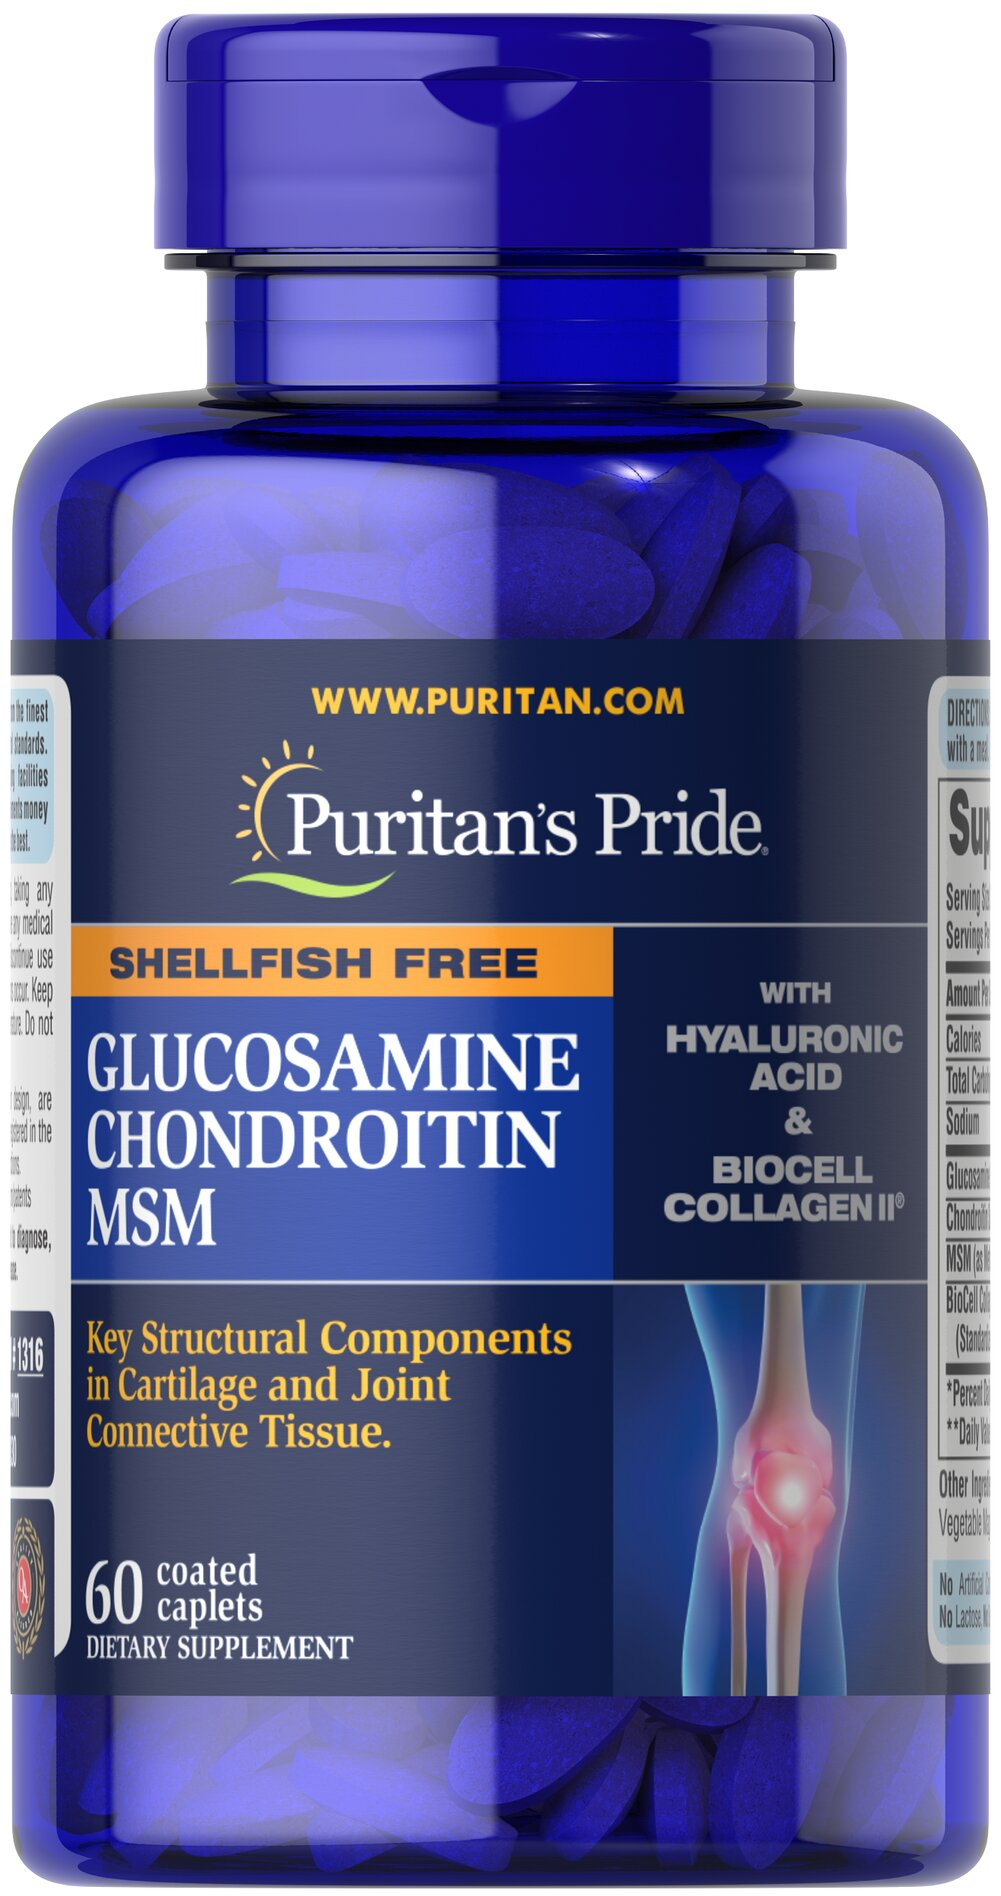 Joint Soother®  Glucosamine, Chondroitin & MSM  with Hyaluronic Acid & Collagen  60 Caplets  $38.24